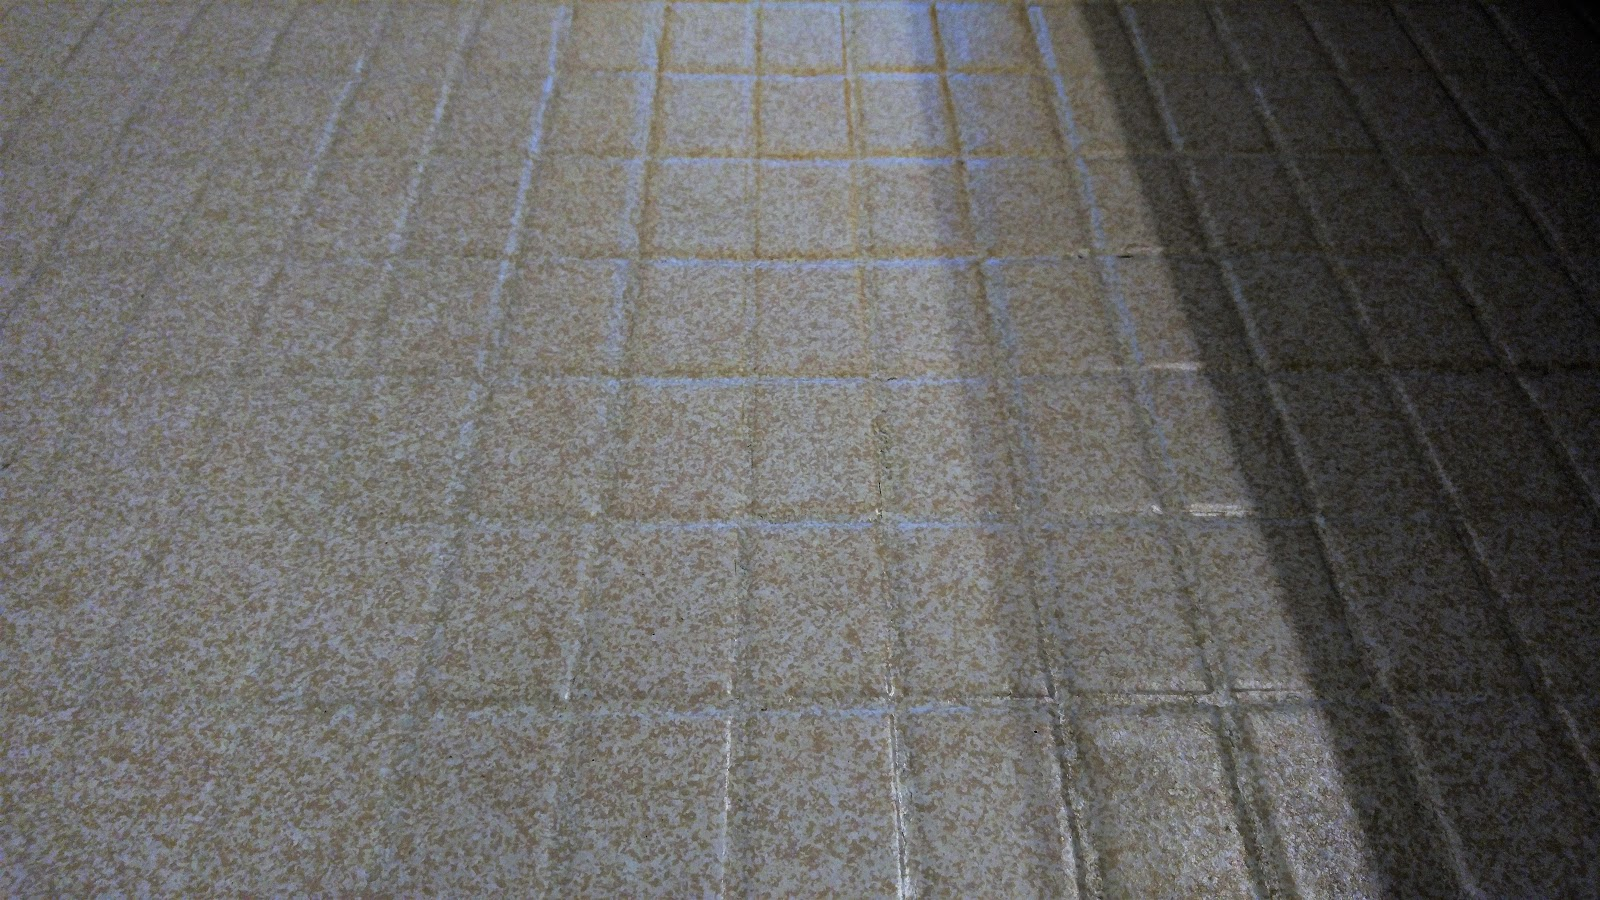 Ceramic tile refinishing installer in knoxville tn concrete floor resurfacing tile resurfacing dailygadgetfo Images